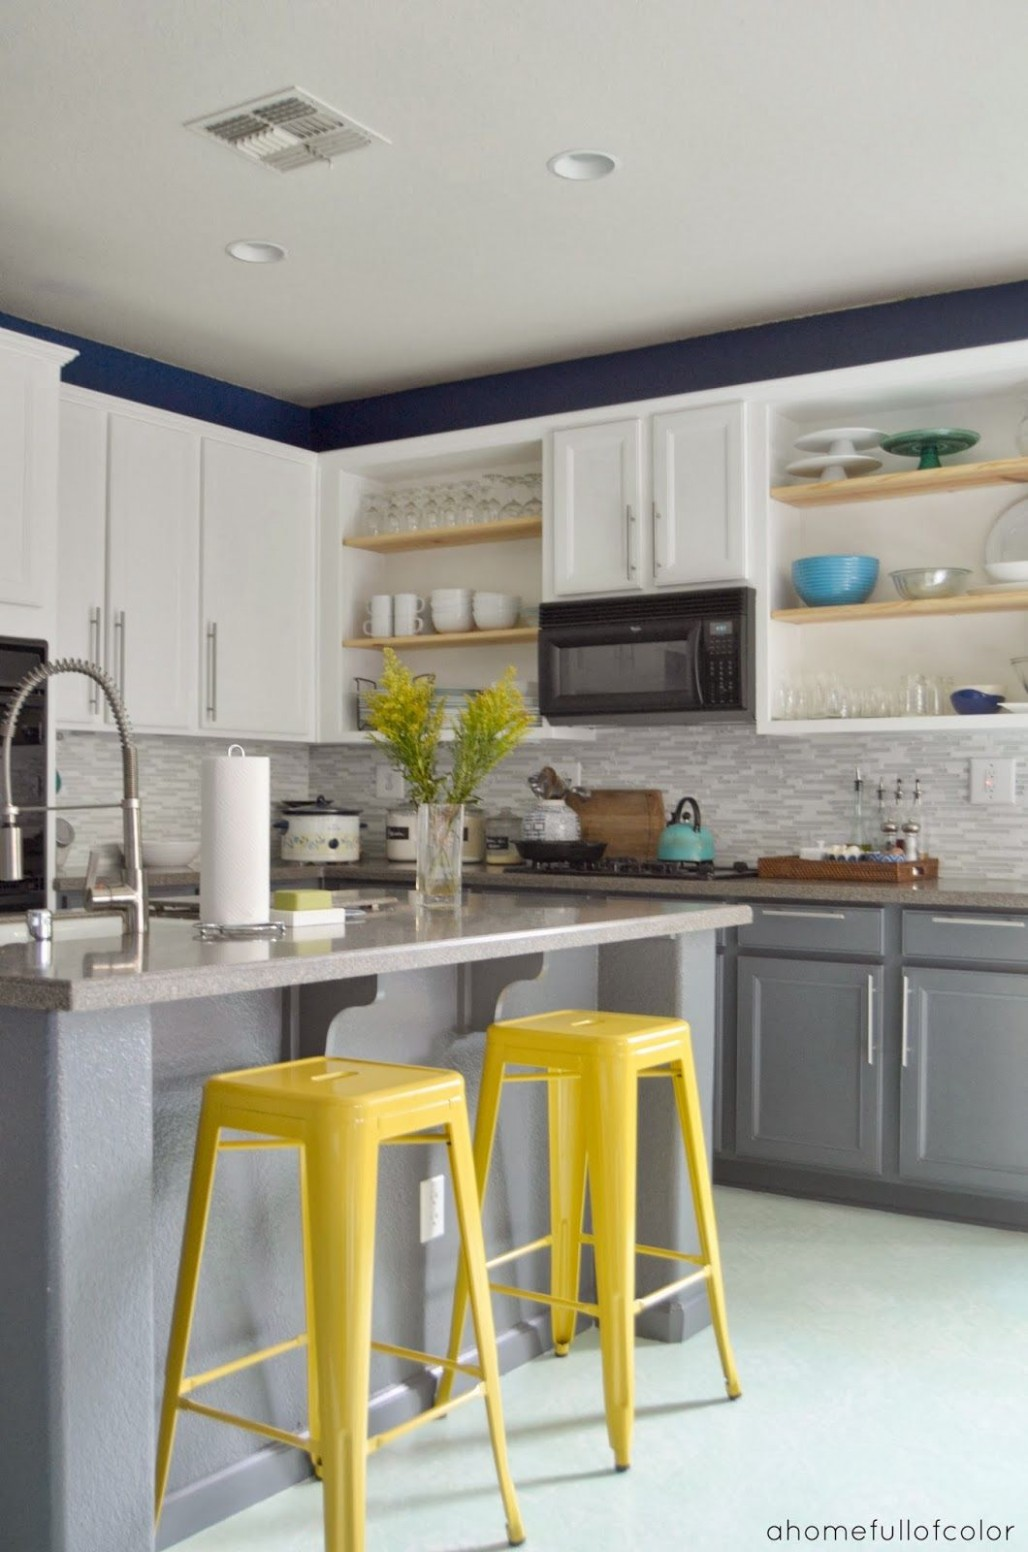 A Home Full Of Color:  Kitchen decor, Popular kitchen colors  - Yellow Kitchen With Blue Cabinets